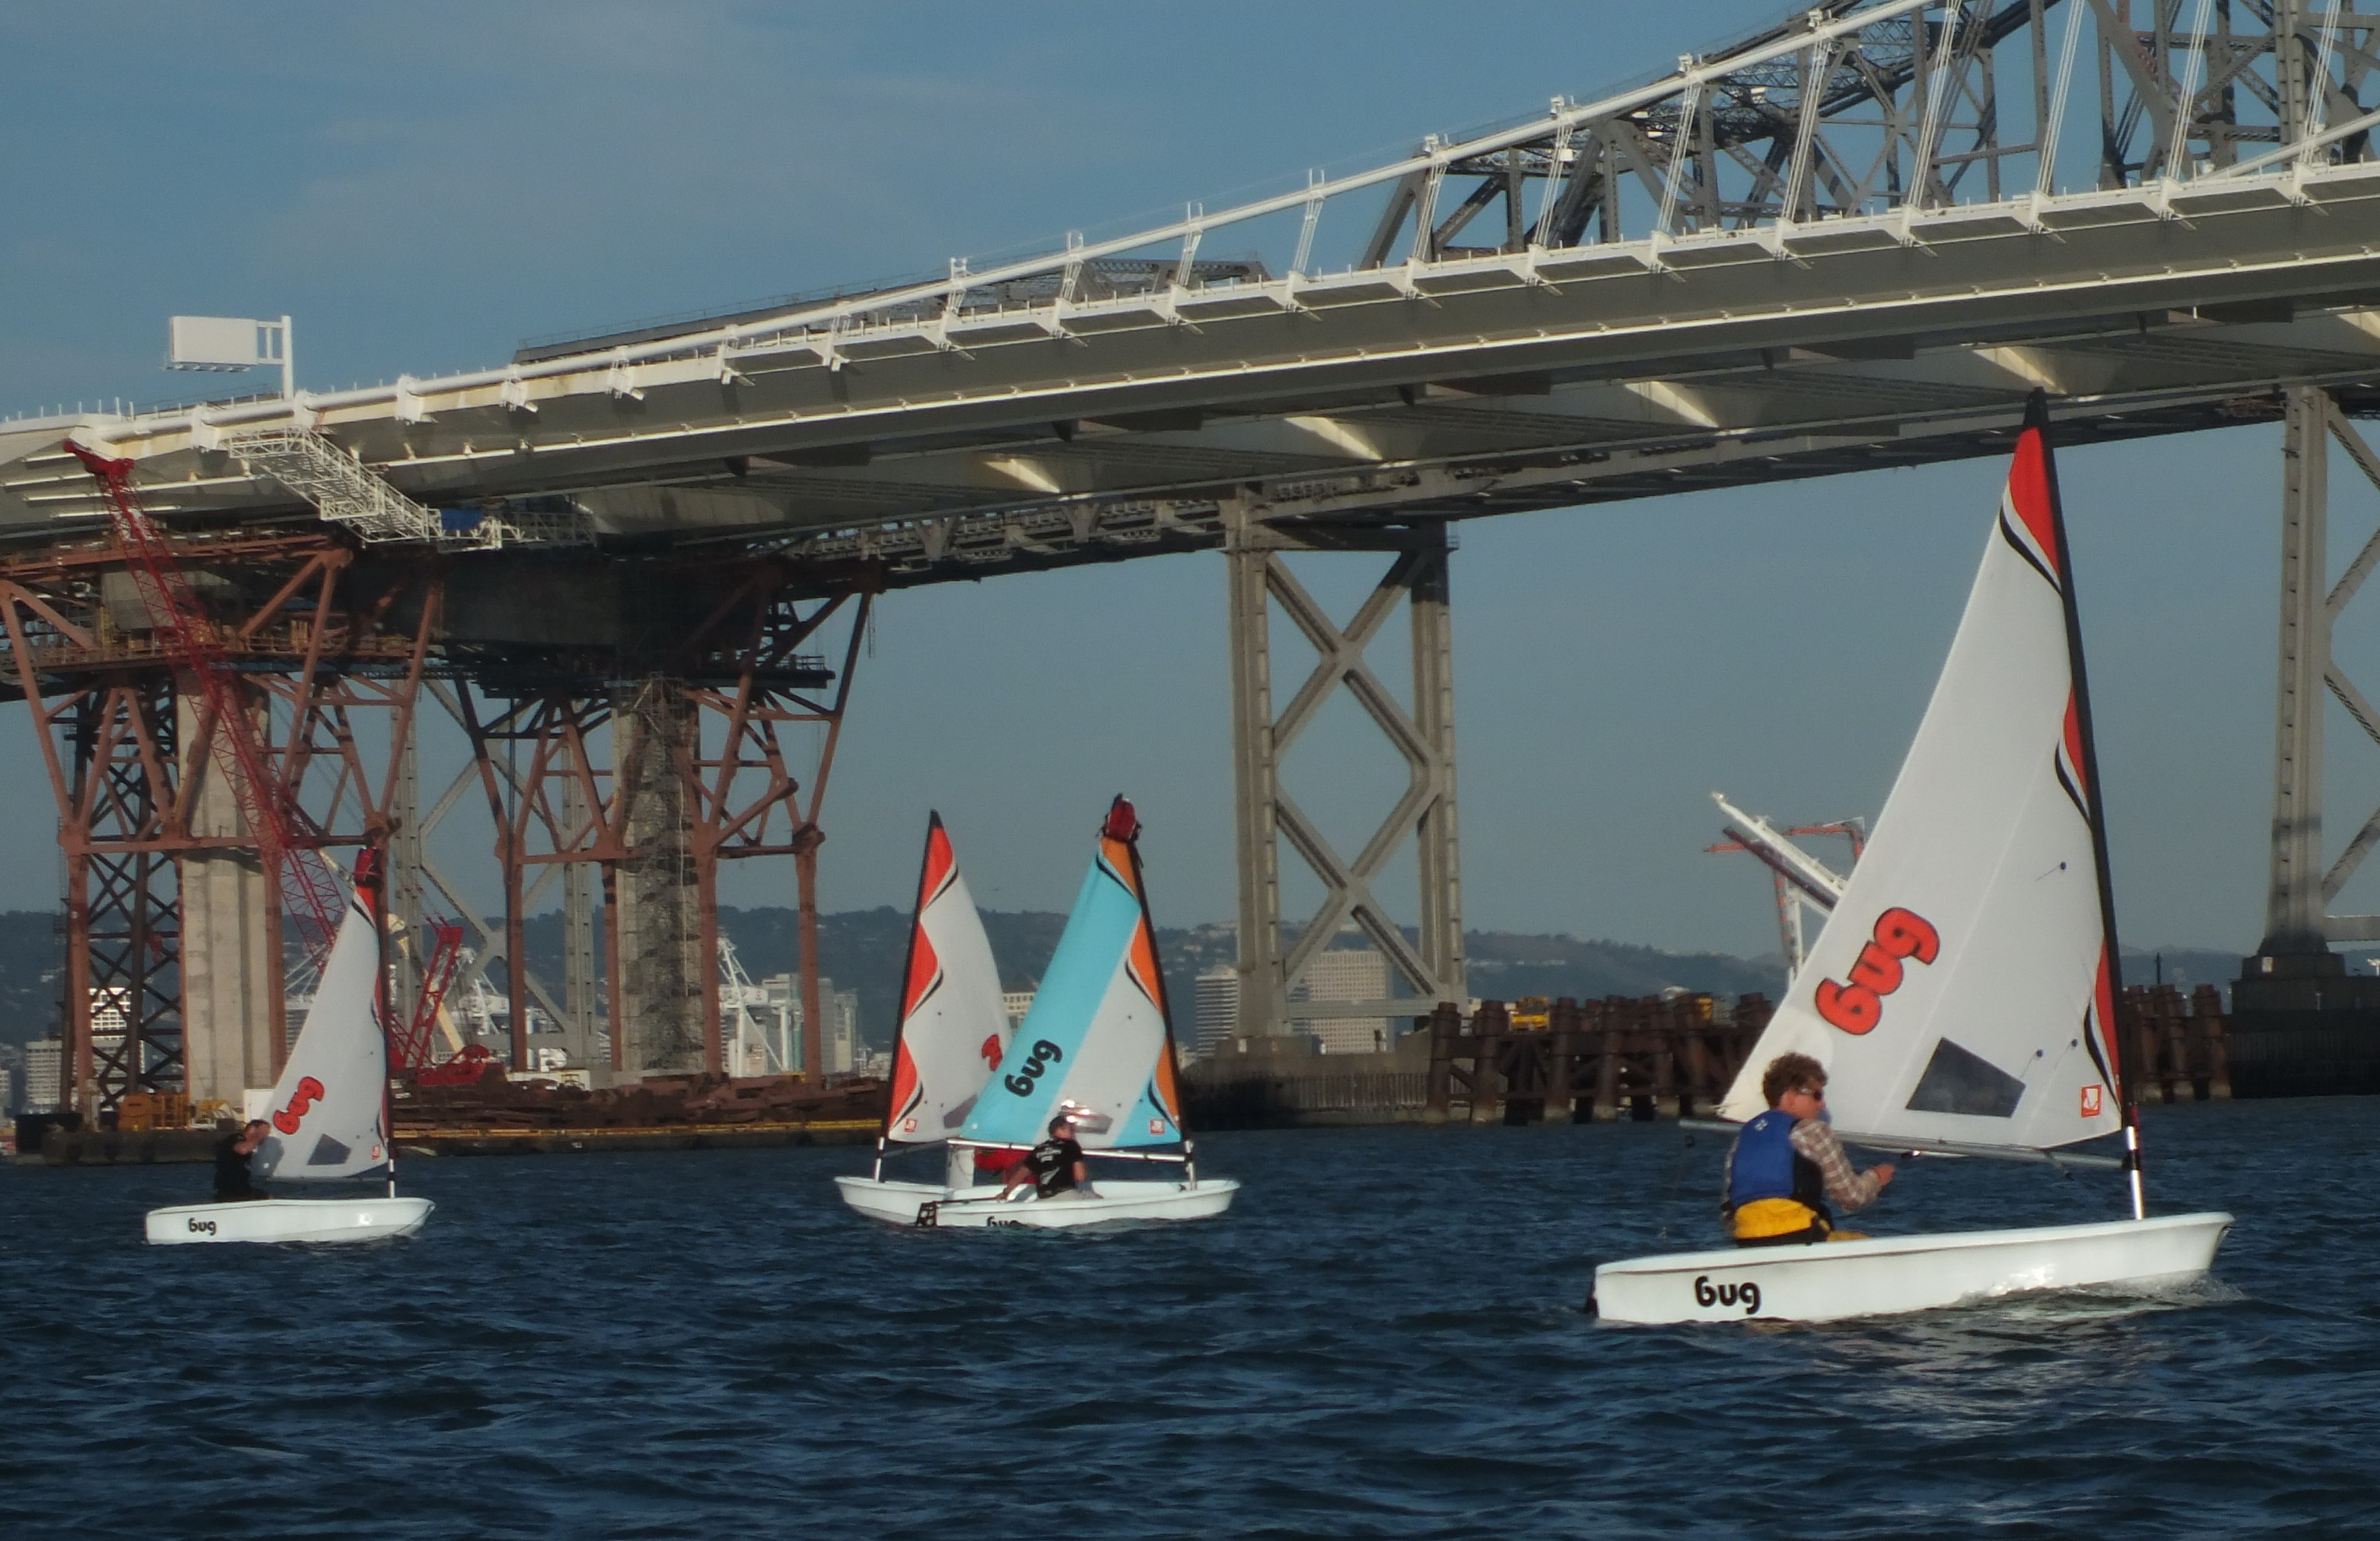 Racing Framed by new Bay Bridge